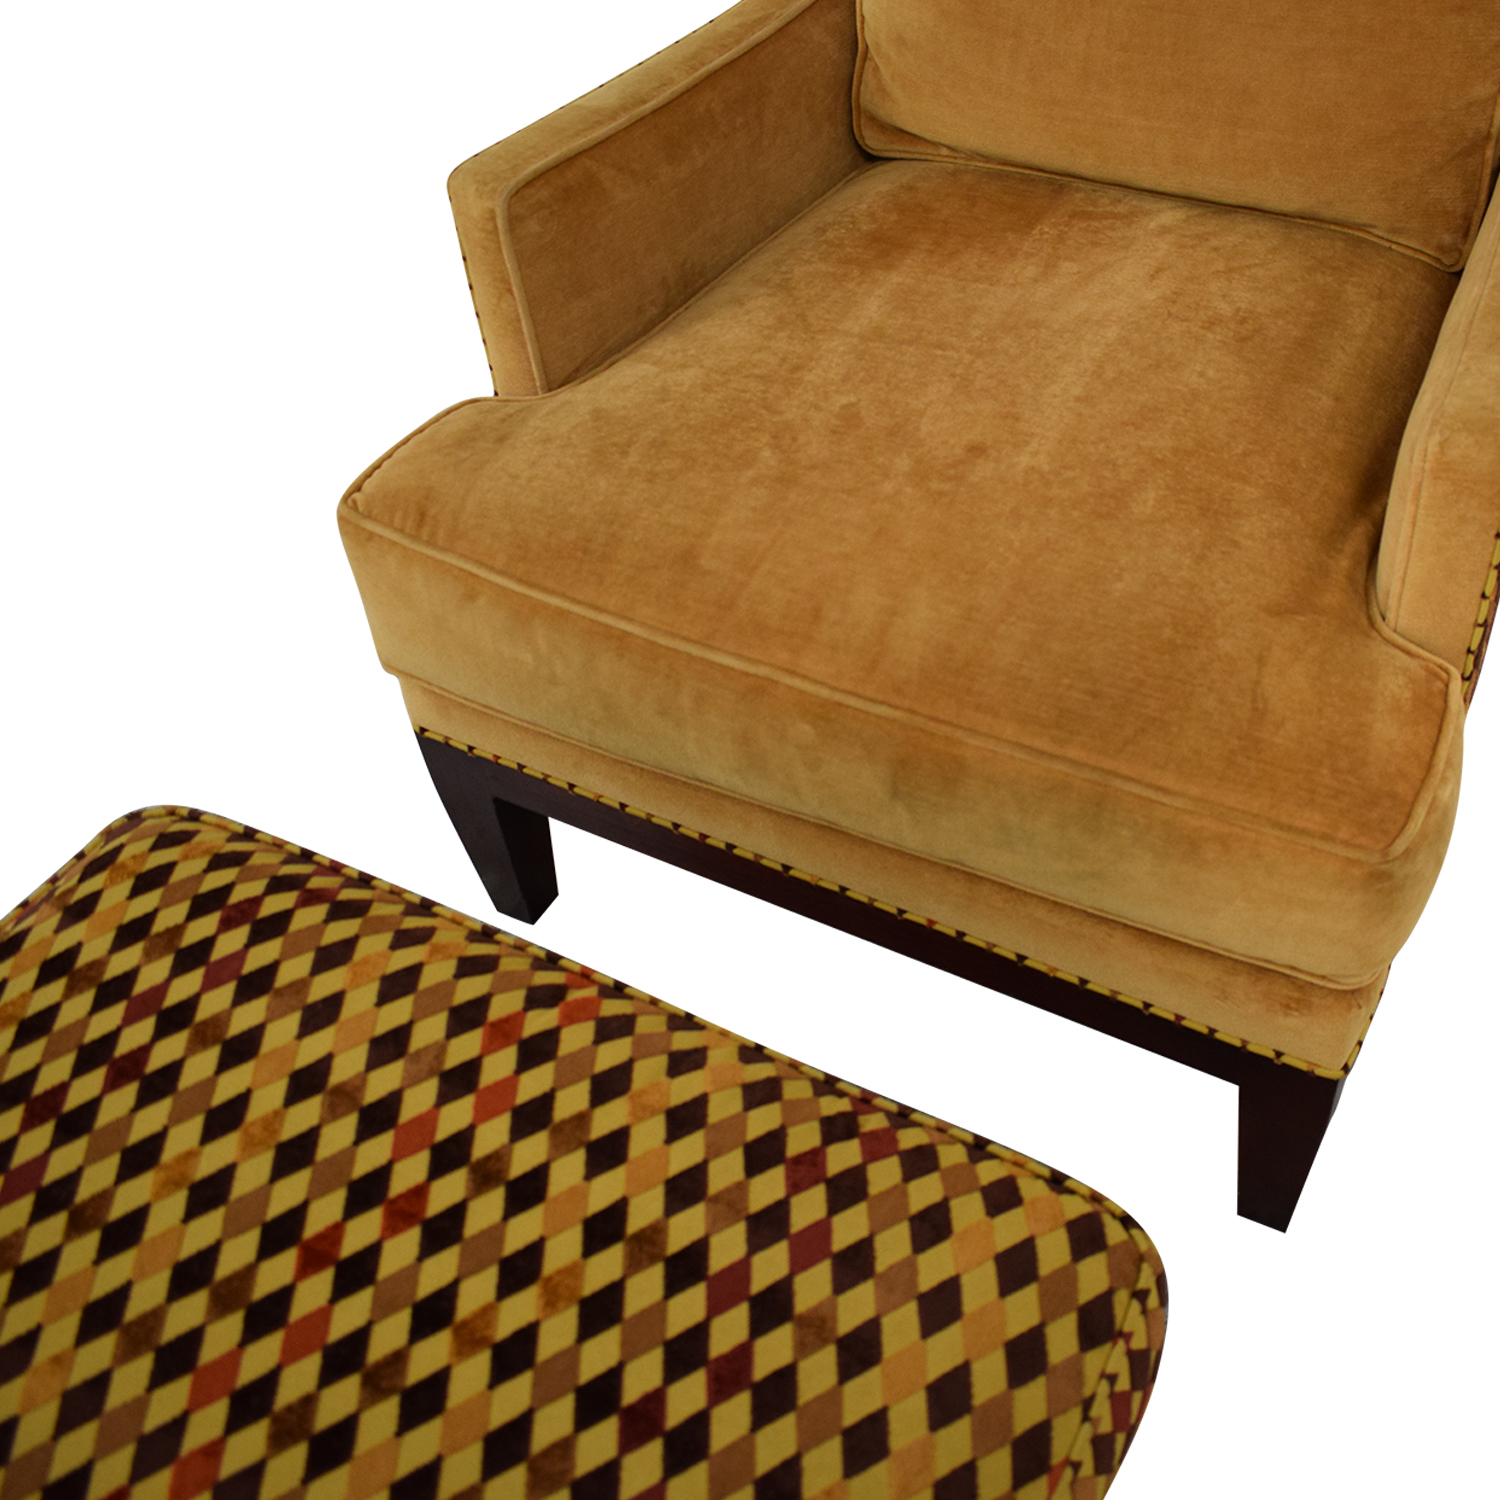 Stickley Furniture Stickley Mid Century Accent Chair used